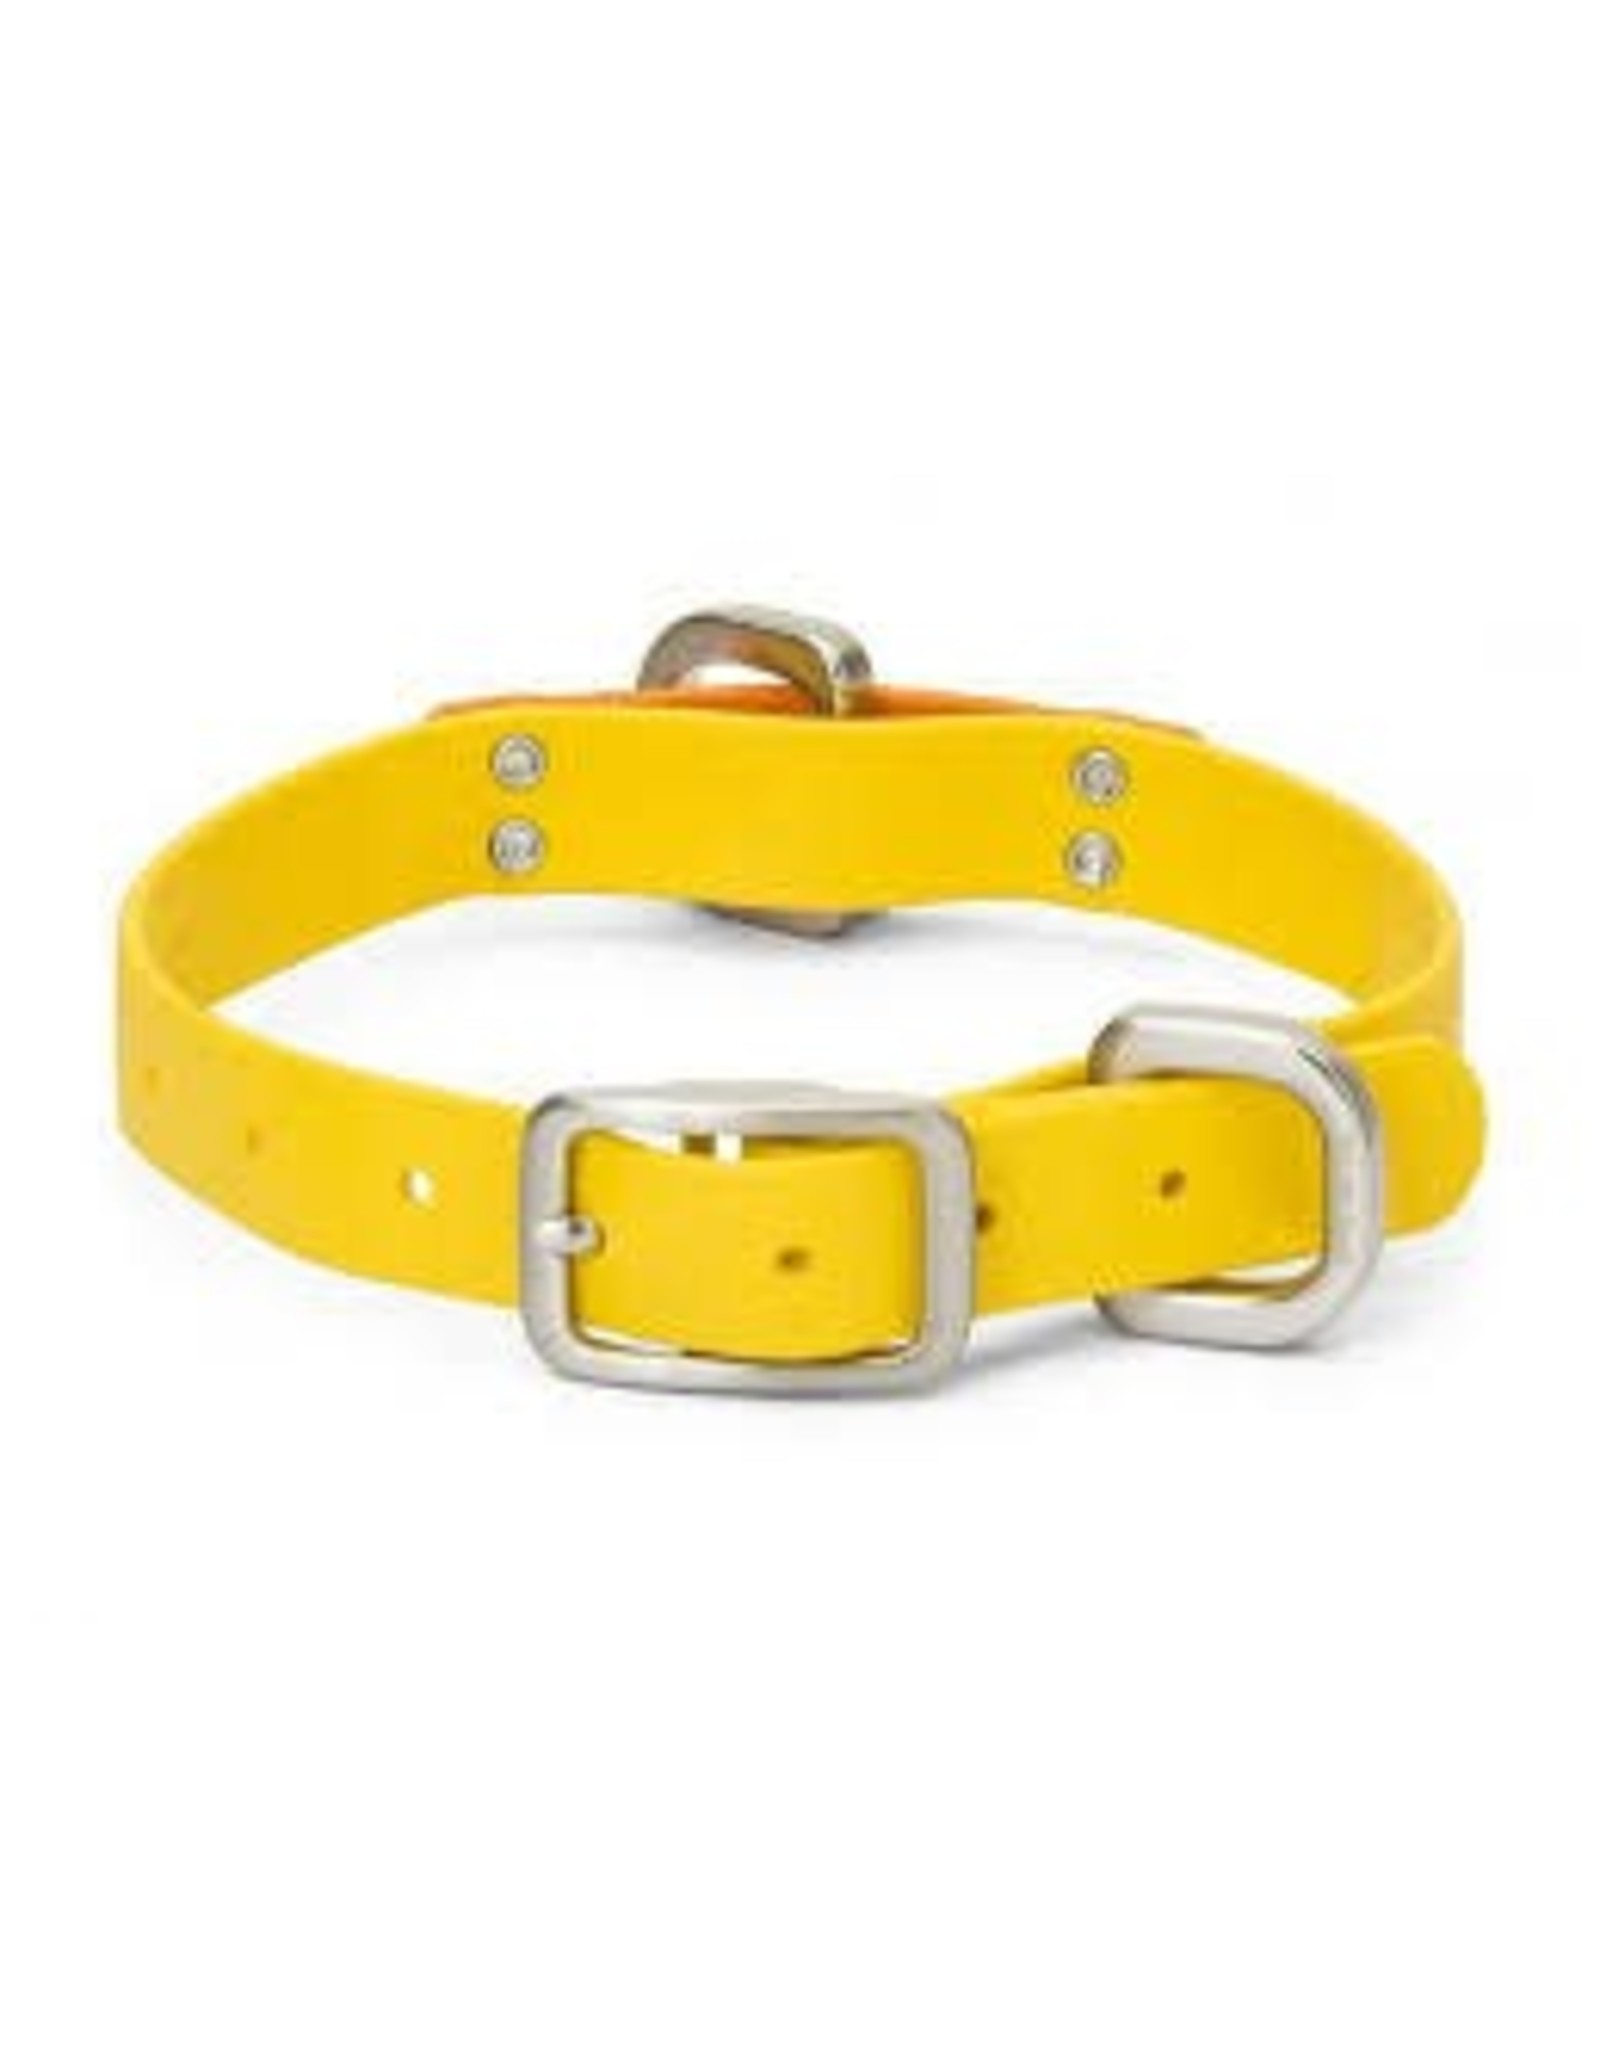 WEST PAW WEST PAW JAUNTS COLLAR MED-YELLOW